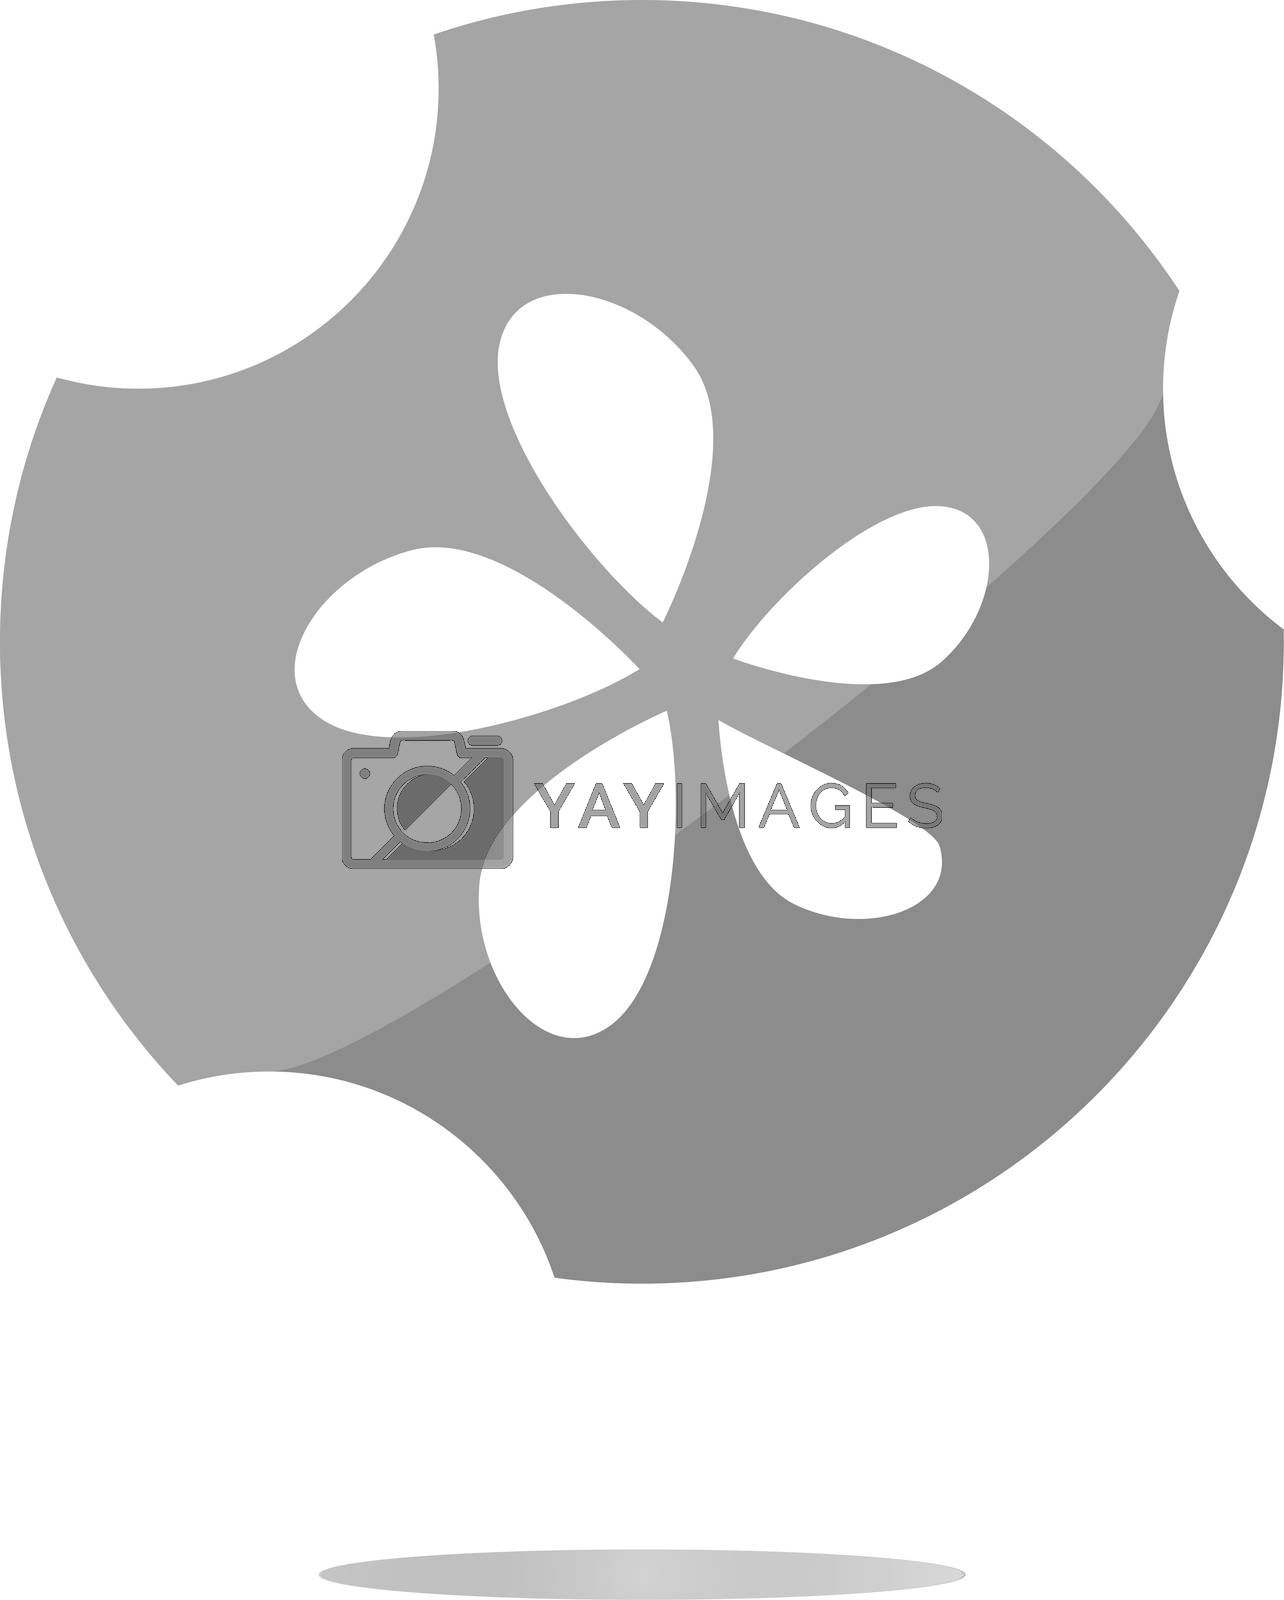 Icon button series - Leaf . Flat sign isolated on white background